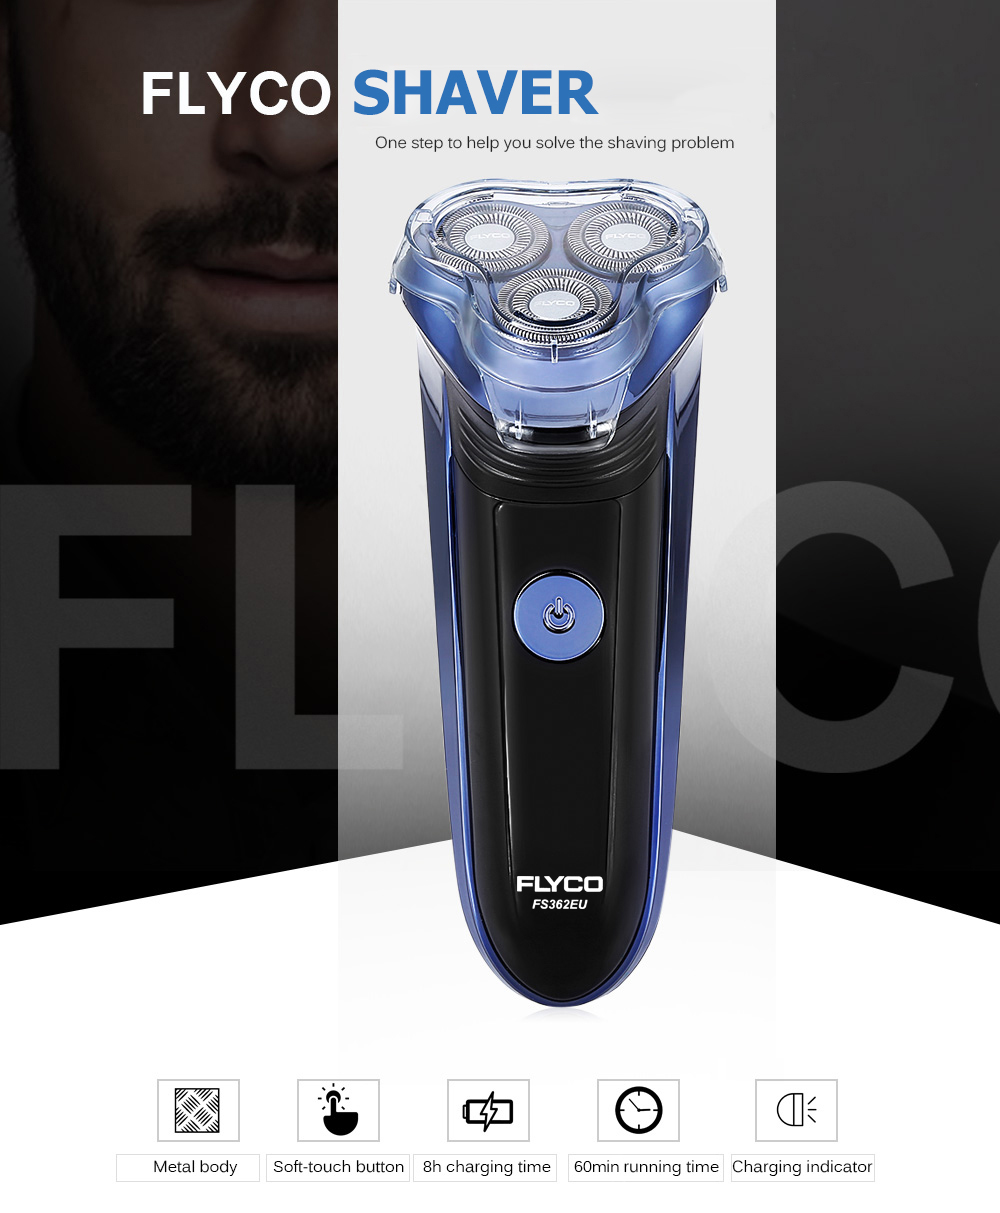 Gearbest FLYCO FS362EU Electric Shaver with Comfort Cut Blade System for Men